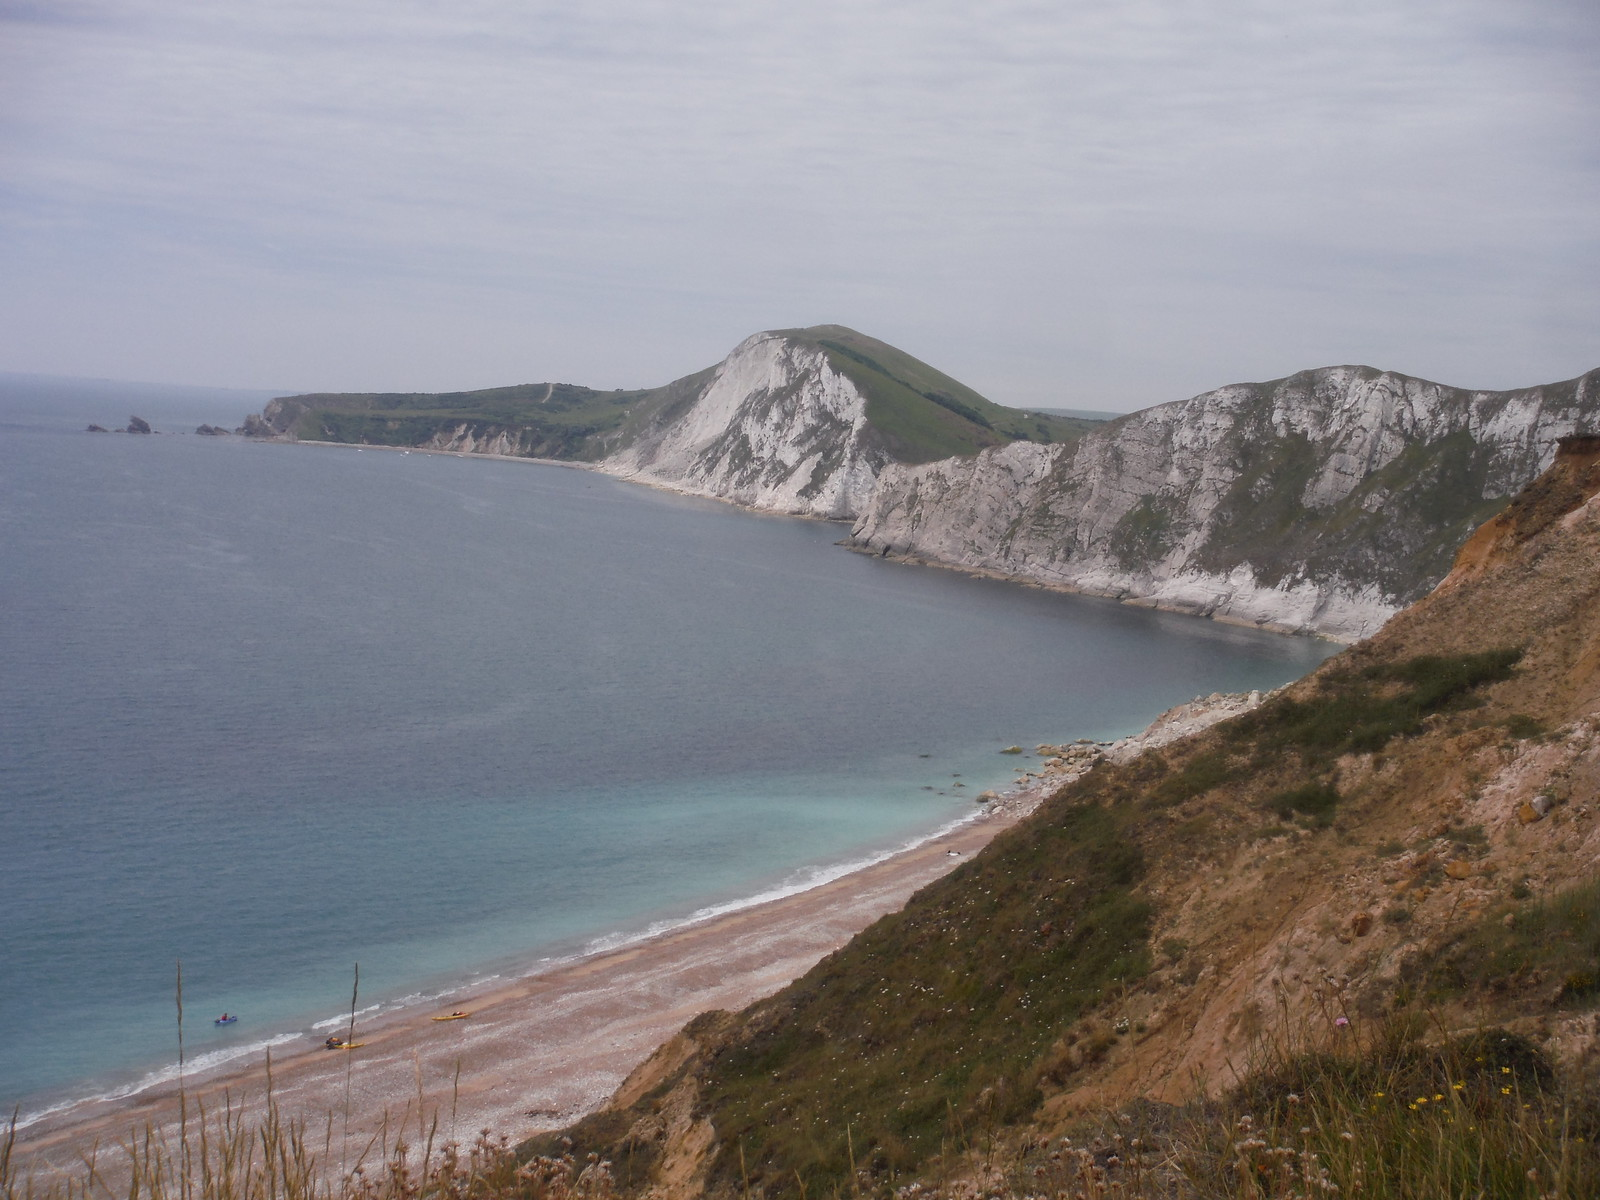 Worbarrow Bay to Mupe Bay SWC Walk 54 - Lulworth Cove Circular (via Tyneham and Durdle Door)